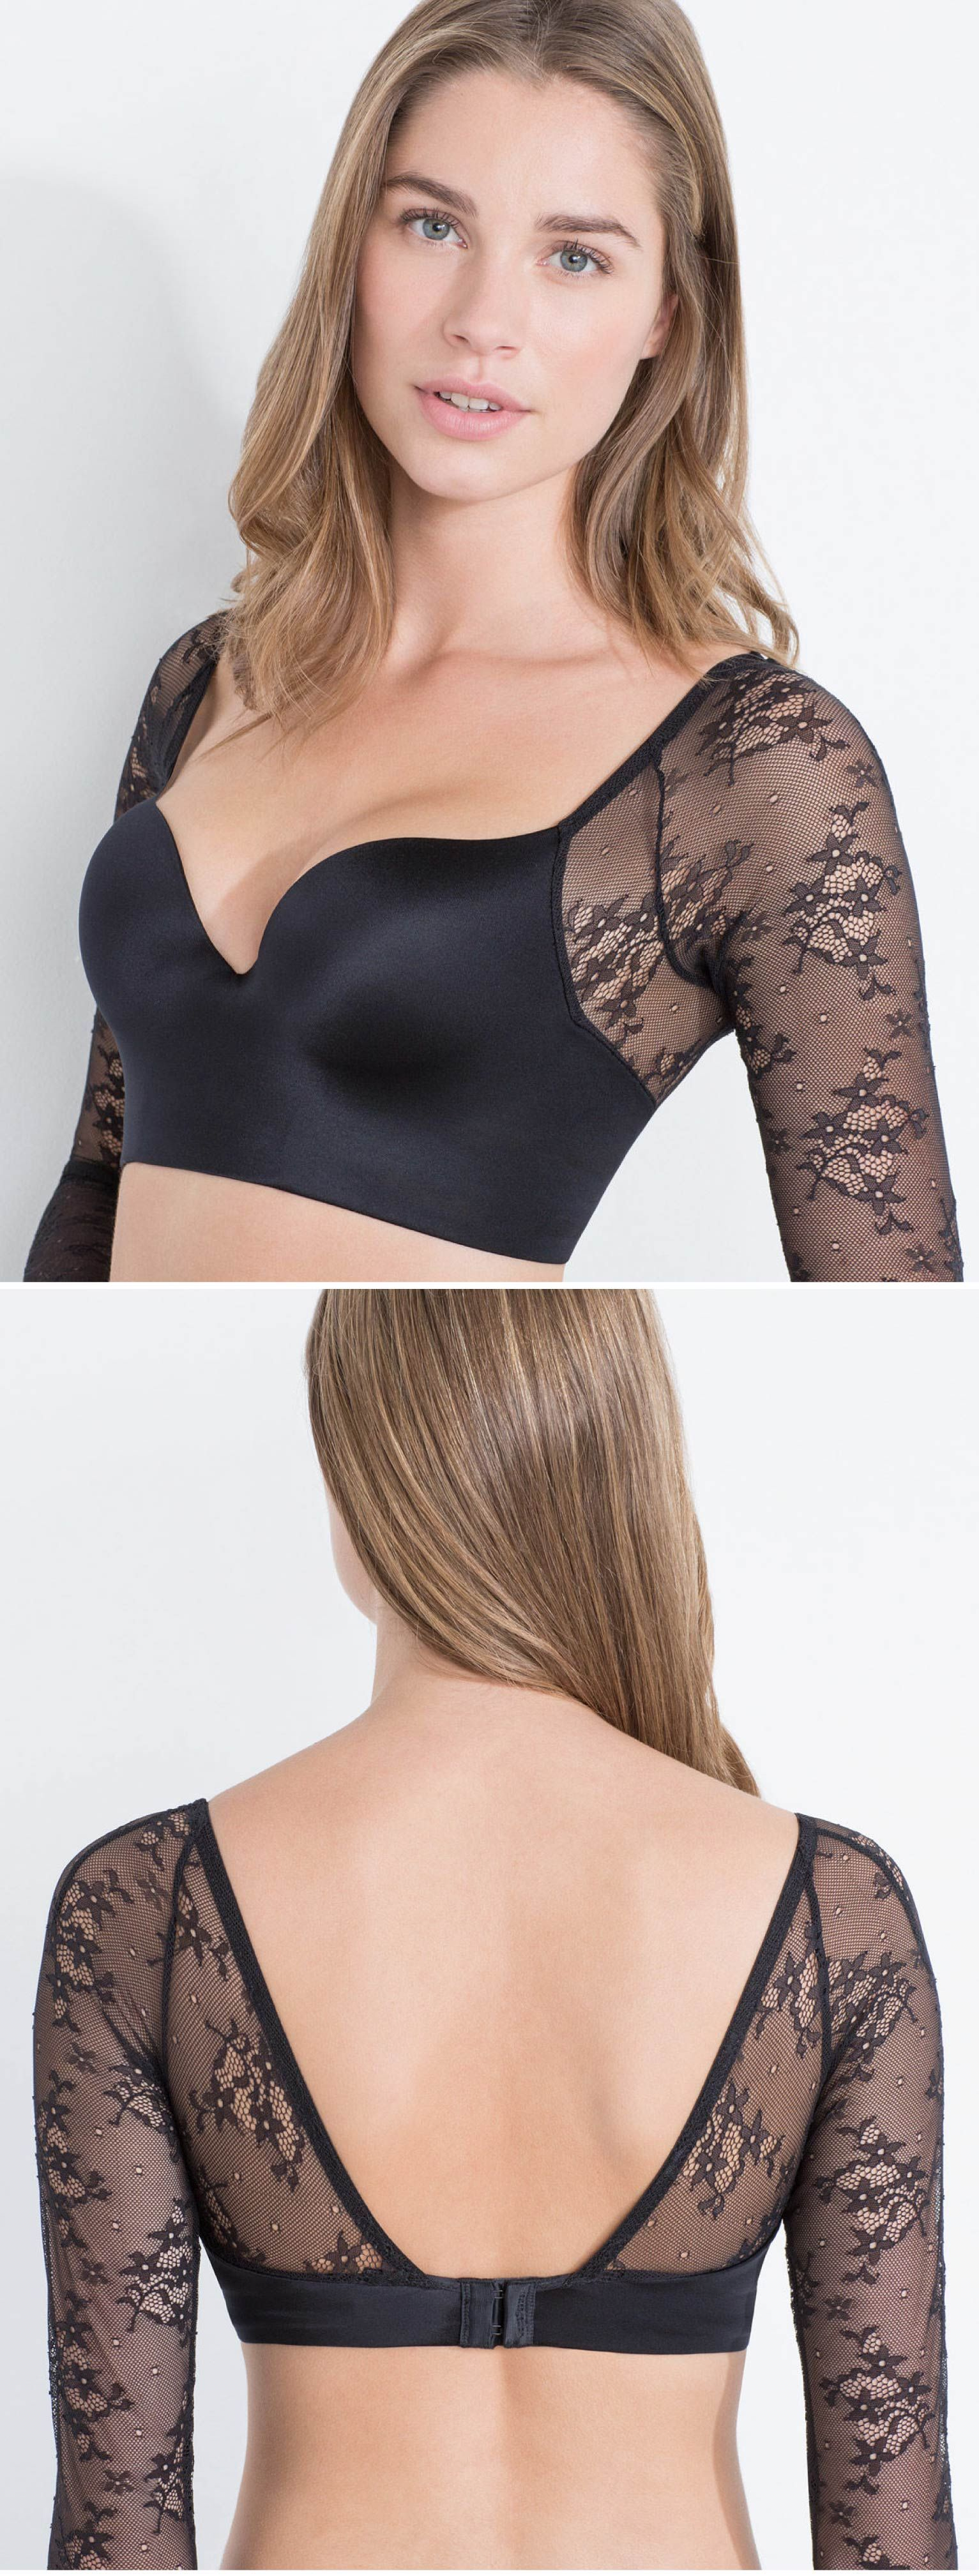 e2445a76b4c90 Long lace sleeve push up bra - Limited Edition